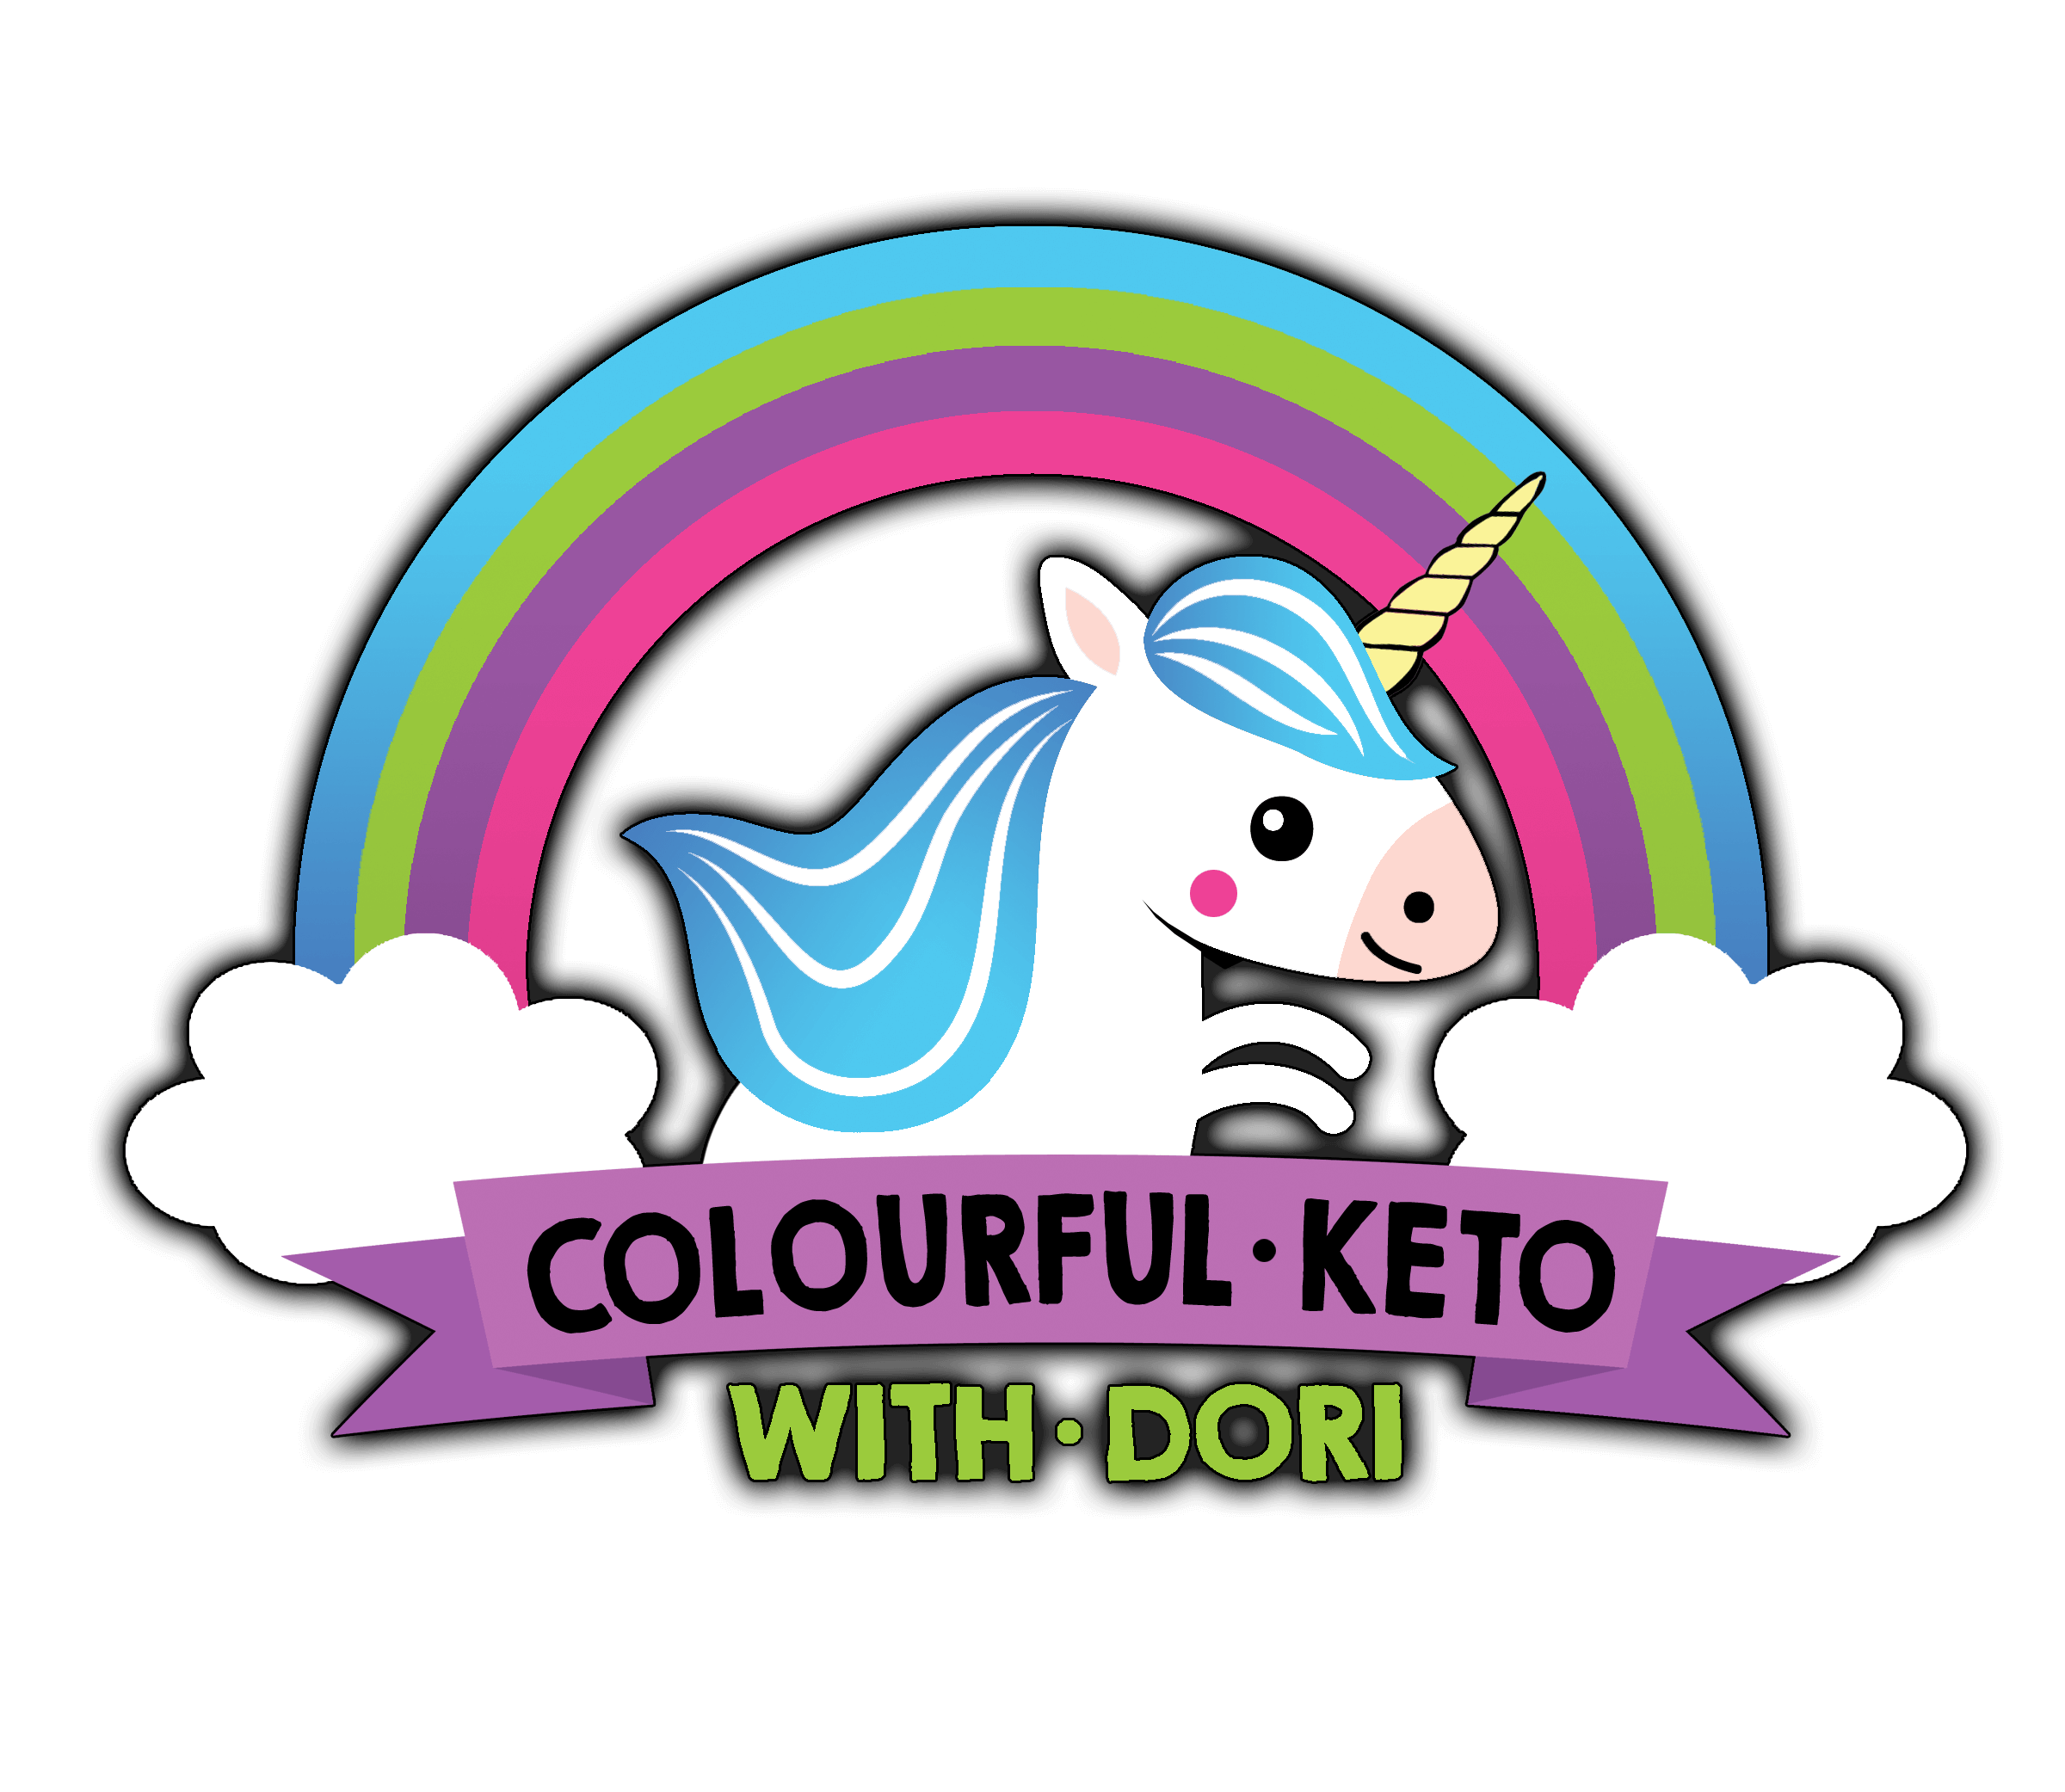 Colourful Keto with Dori